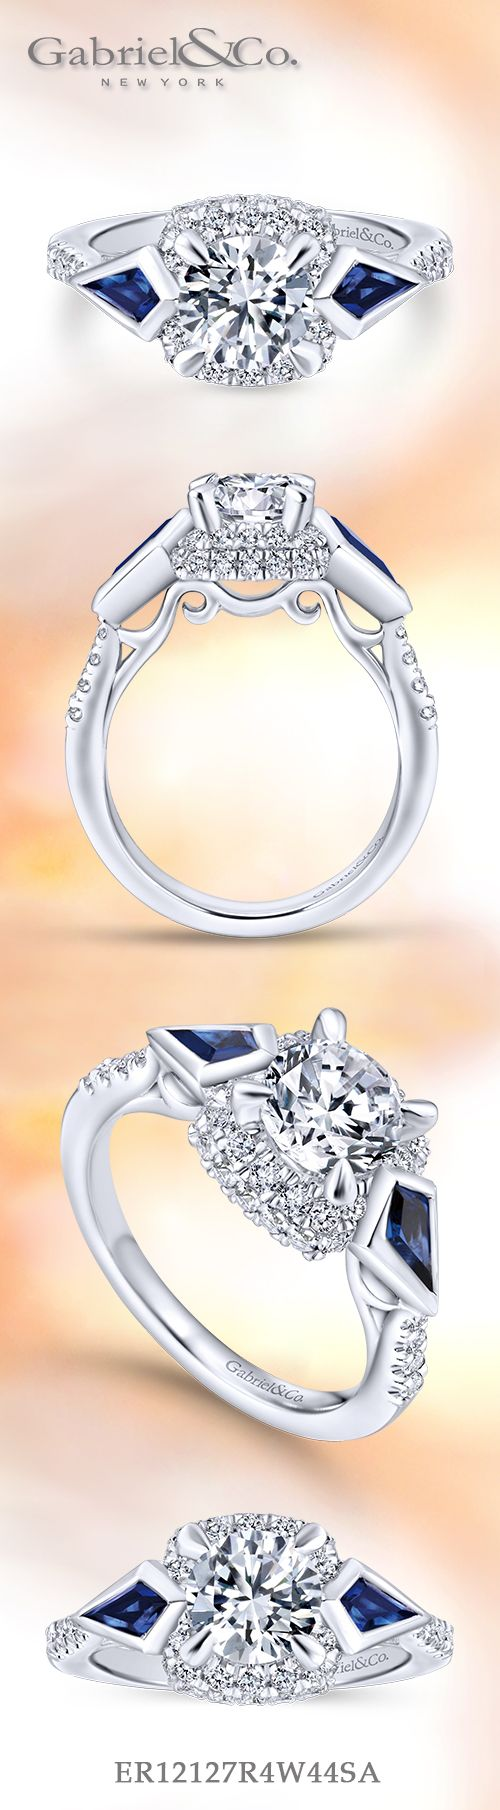 Gabriel & Co. - Voted #1 Most Preferred Bridal Brand.    Dazzle her with this three stone engagement ring featuring angular sapphires on either side.